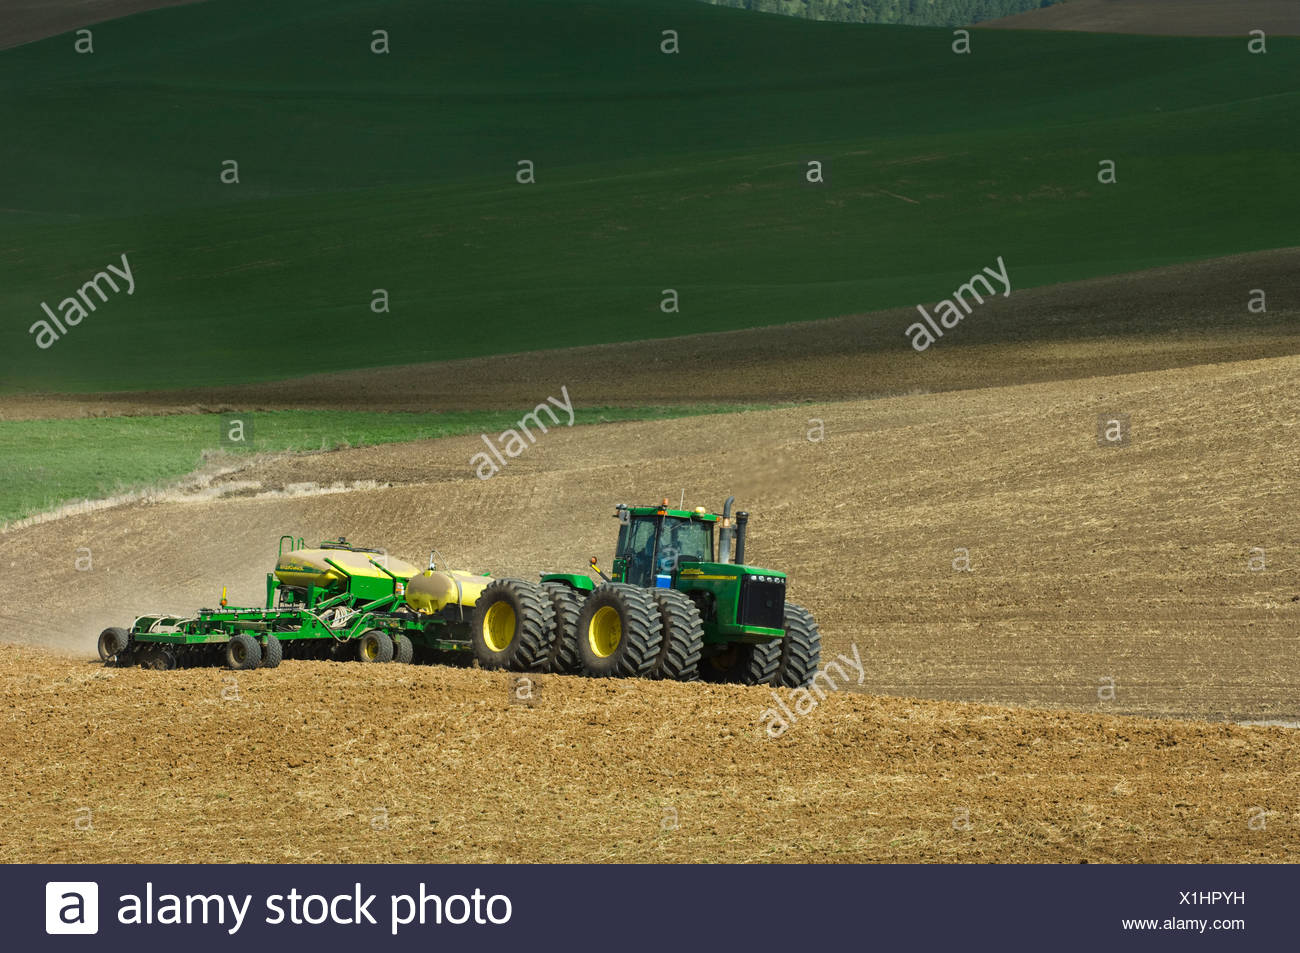 A John Deere tractor and air seeder planting garbanzo beans (chick peas) in the rolling hills of the Palouse / Washington, USA. - Stock Image